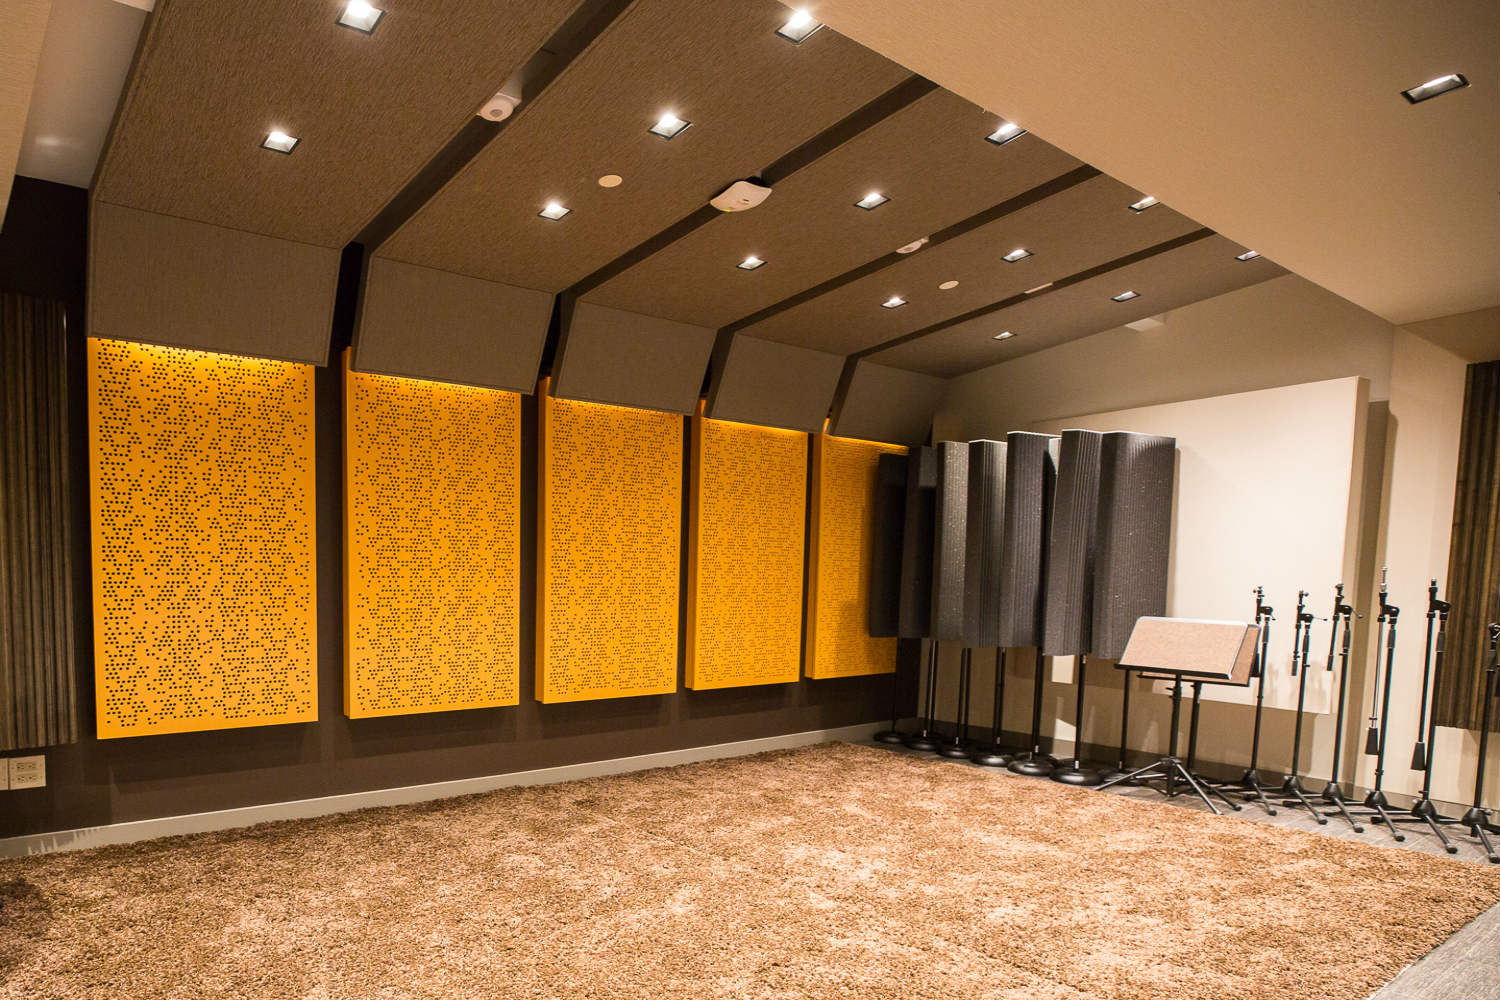 Audible is the world's largest producer/distributor of downloadable audiobooks and other spoken-word entertainment. WSDG was commissioned to design their new state-of-the-art recording studio complex. Live Room A